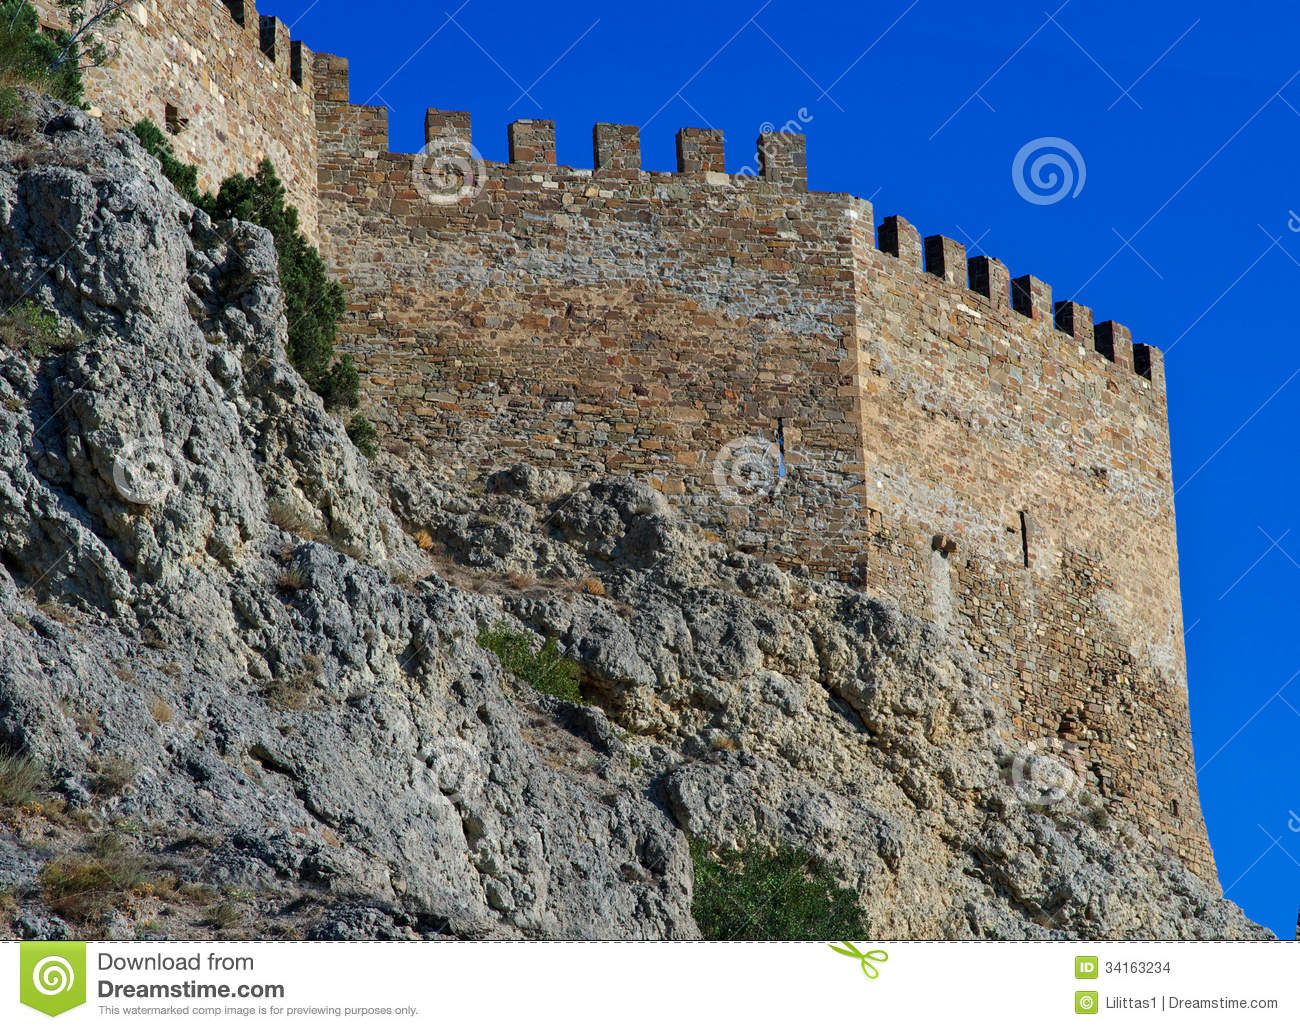 Ruins Of An Ancient Genoa Fortress On A Mountain In Sudak, Crimea.